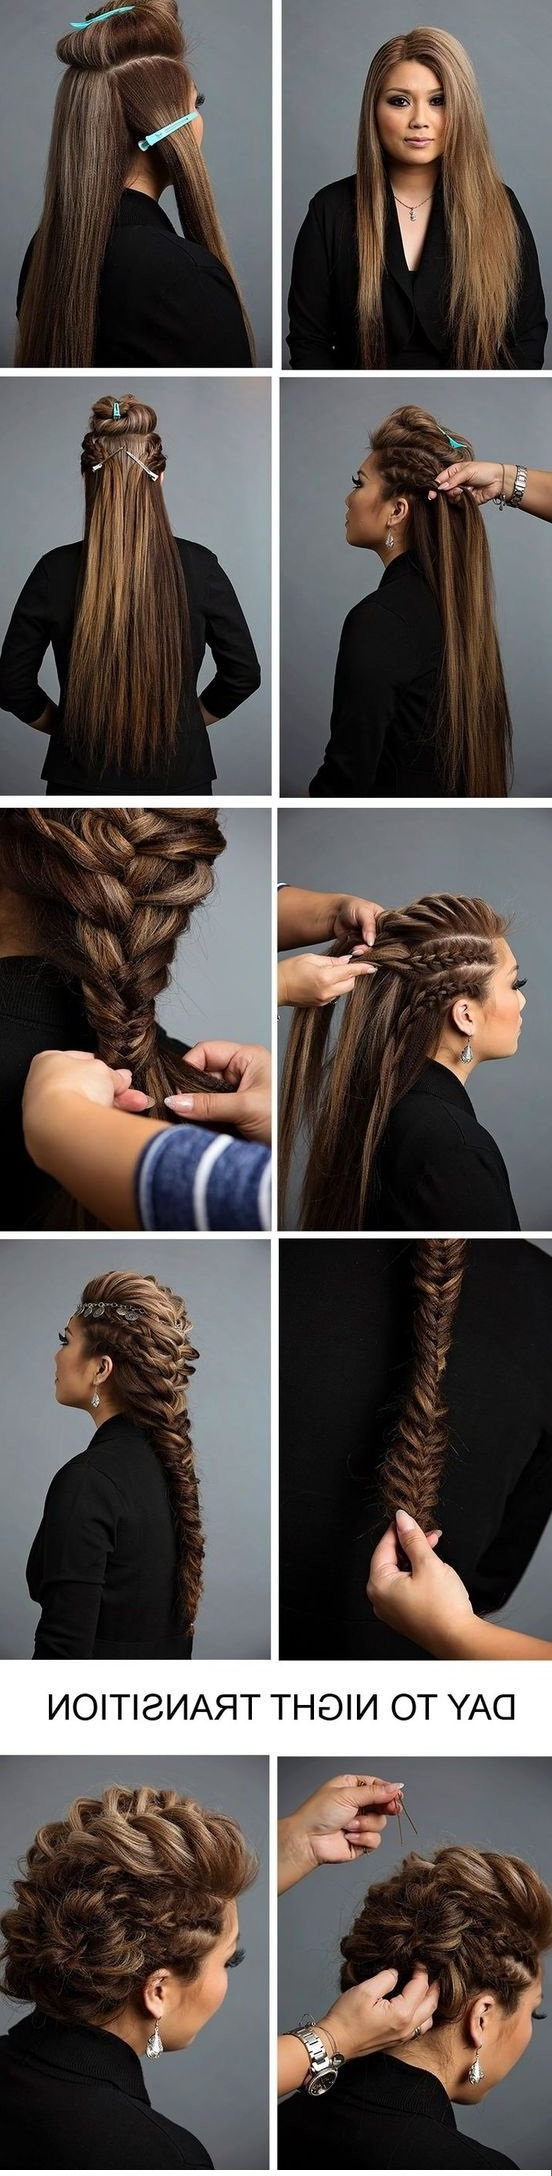 17 Fabulous Faux Hawk Hairstyle Tutorials Throughout Most Popular Messy Braided Faux Hawk Hairstyles (View 4 of 20)